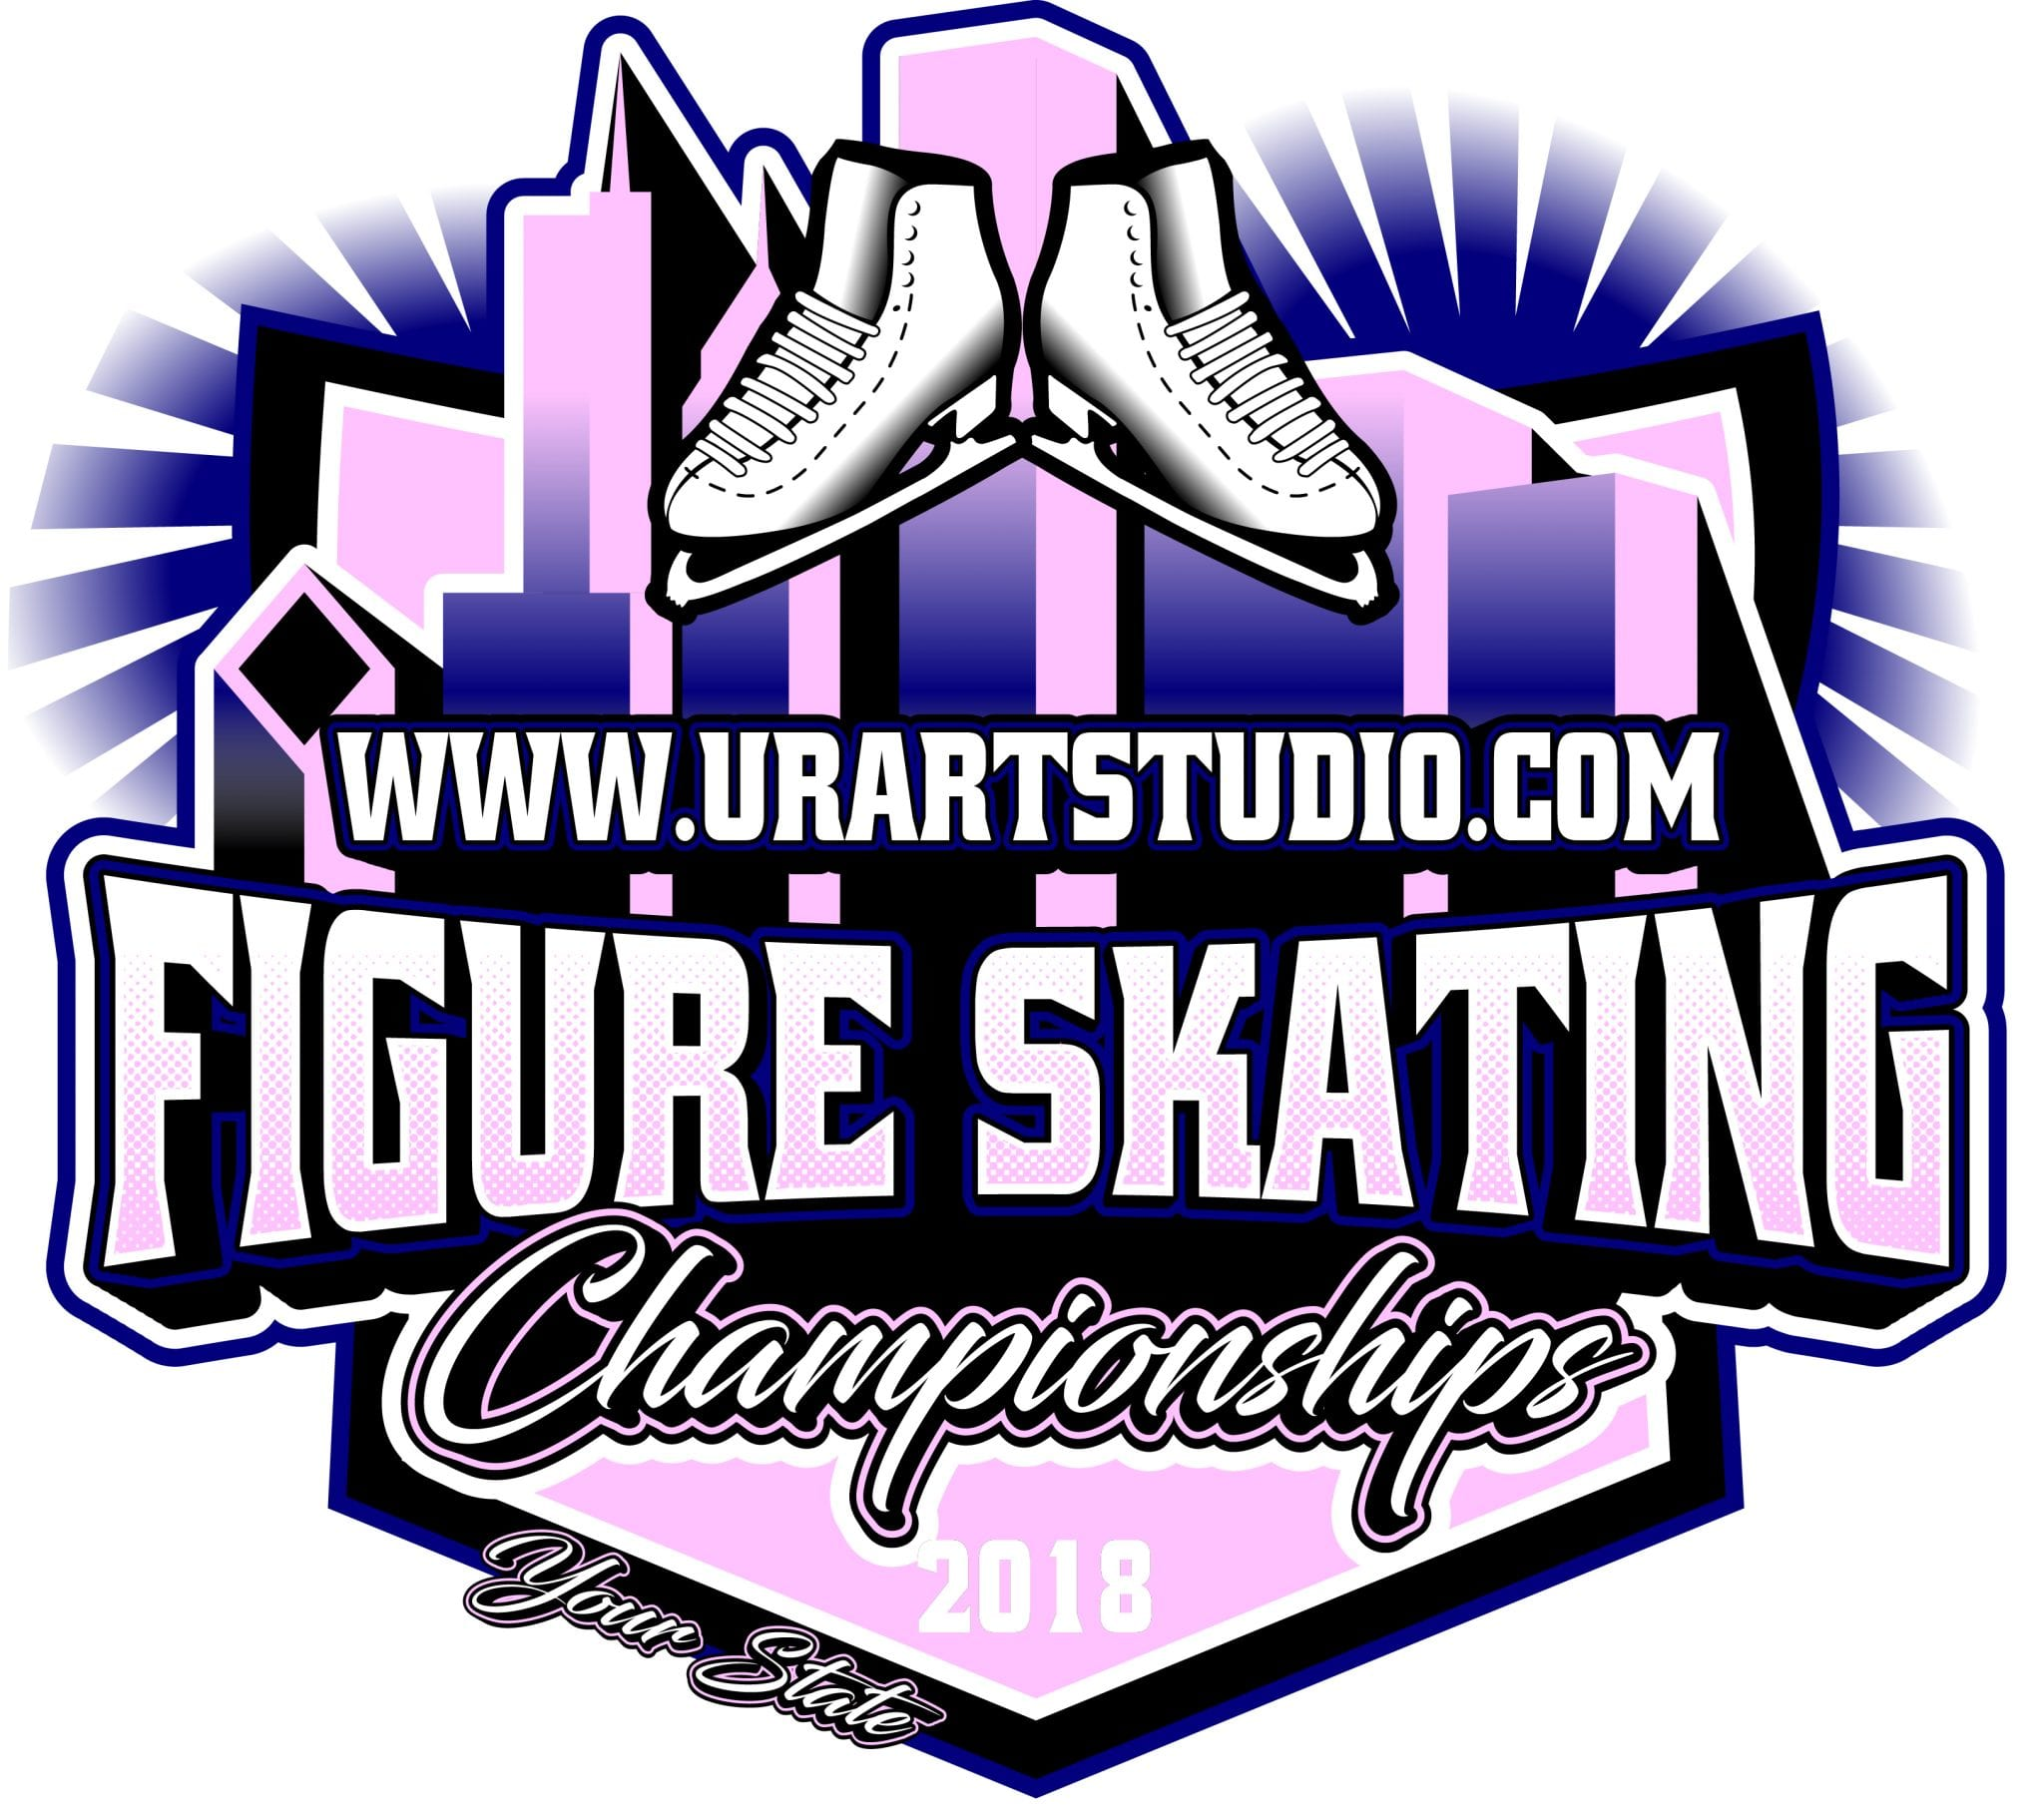 FIGURE SKATING CHAMPIONSHIPS 2018 T-shirt vector logo design for print